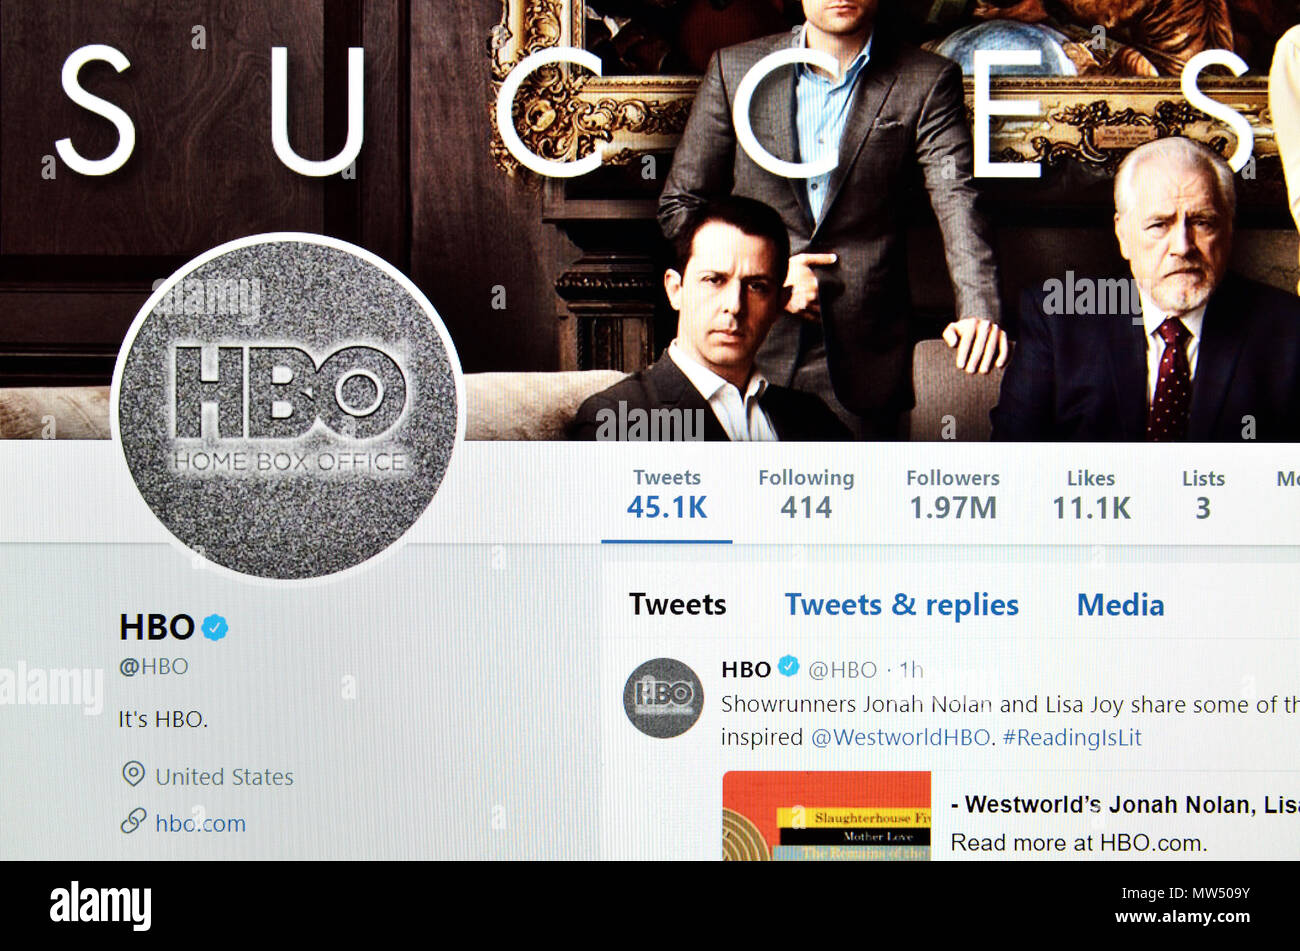 HBO (Home Box Office) Twitter page (2018 Stock Photo: 187580119 - Alamy